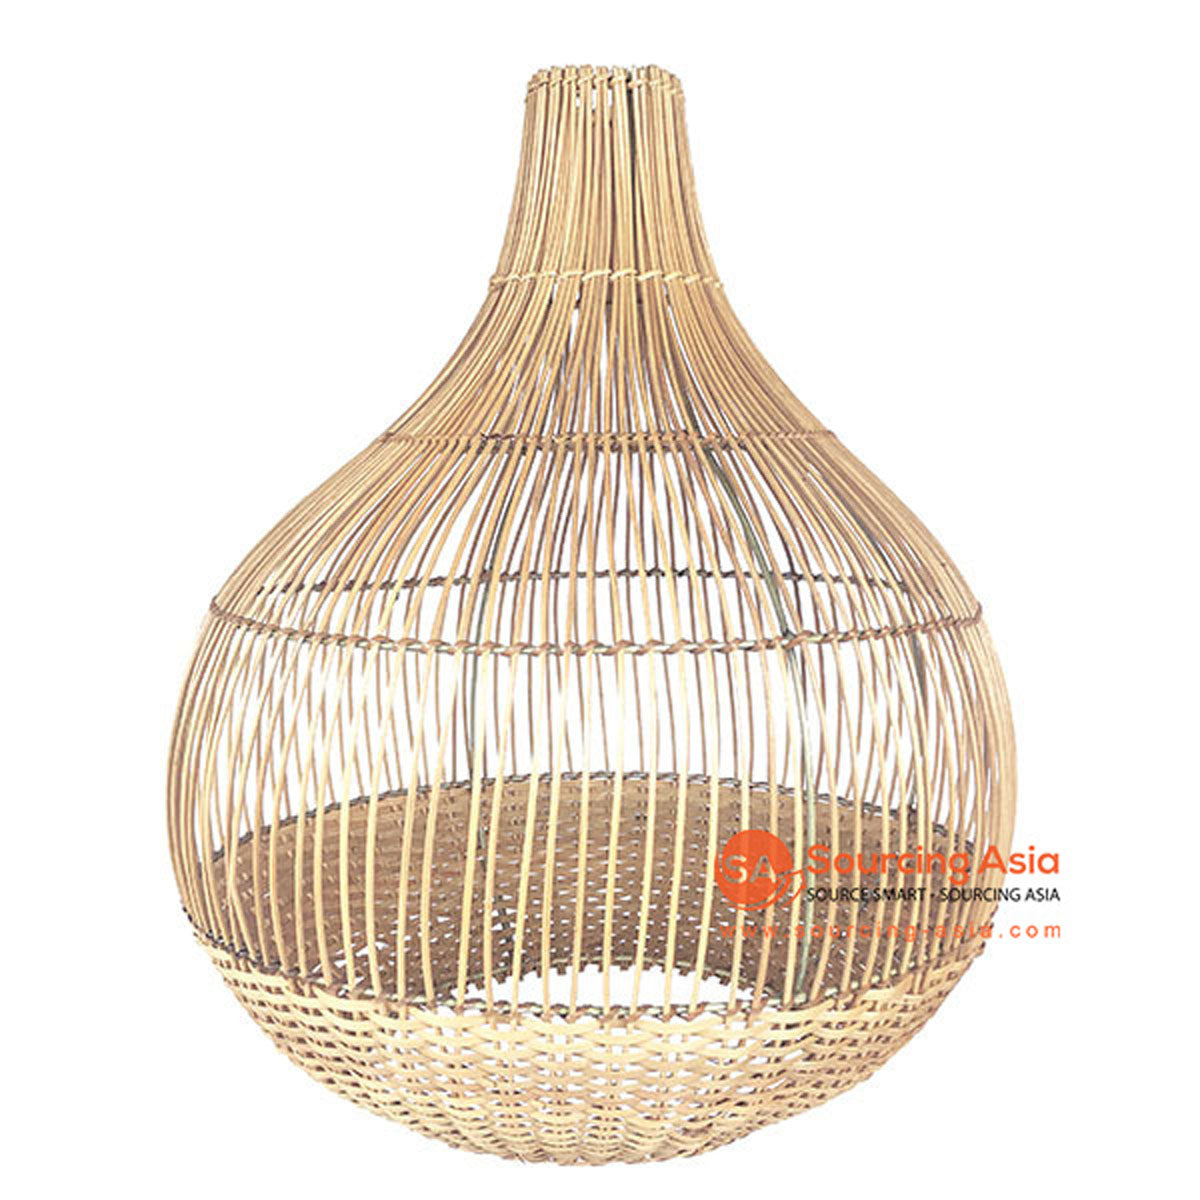 SHL064-1 NATURAL RATTAN PENDANT LAMP